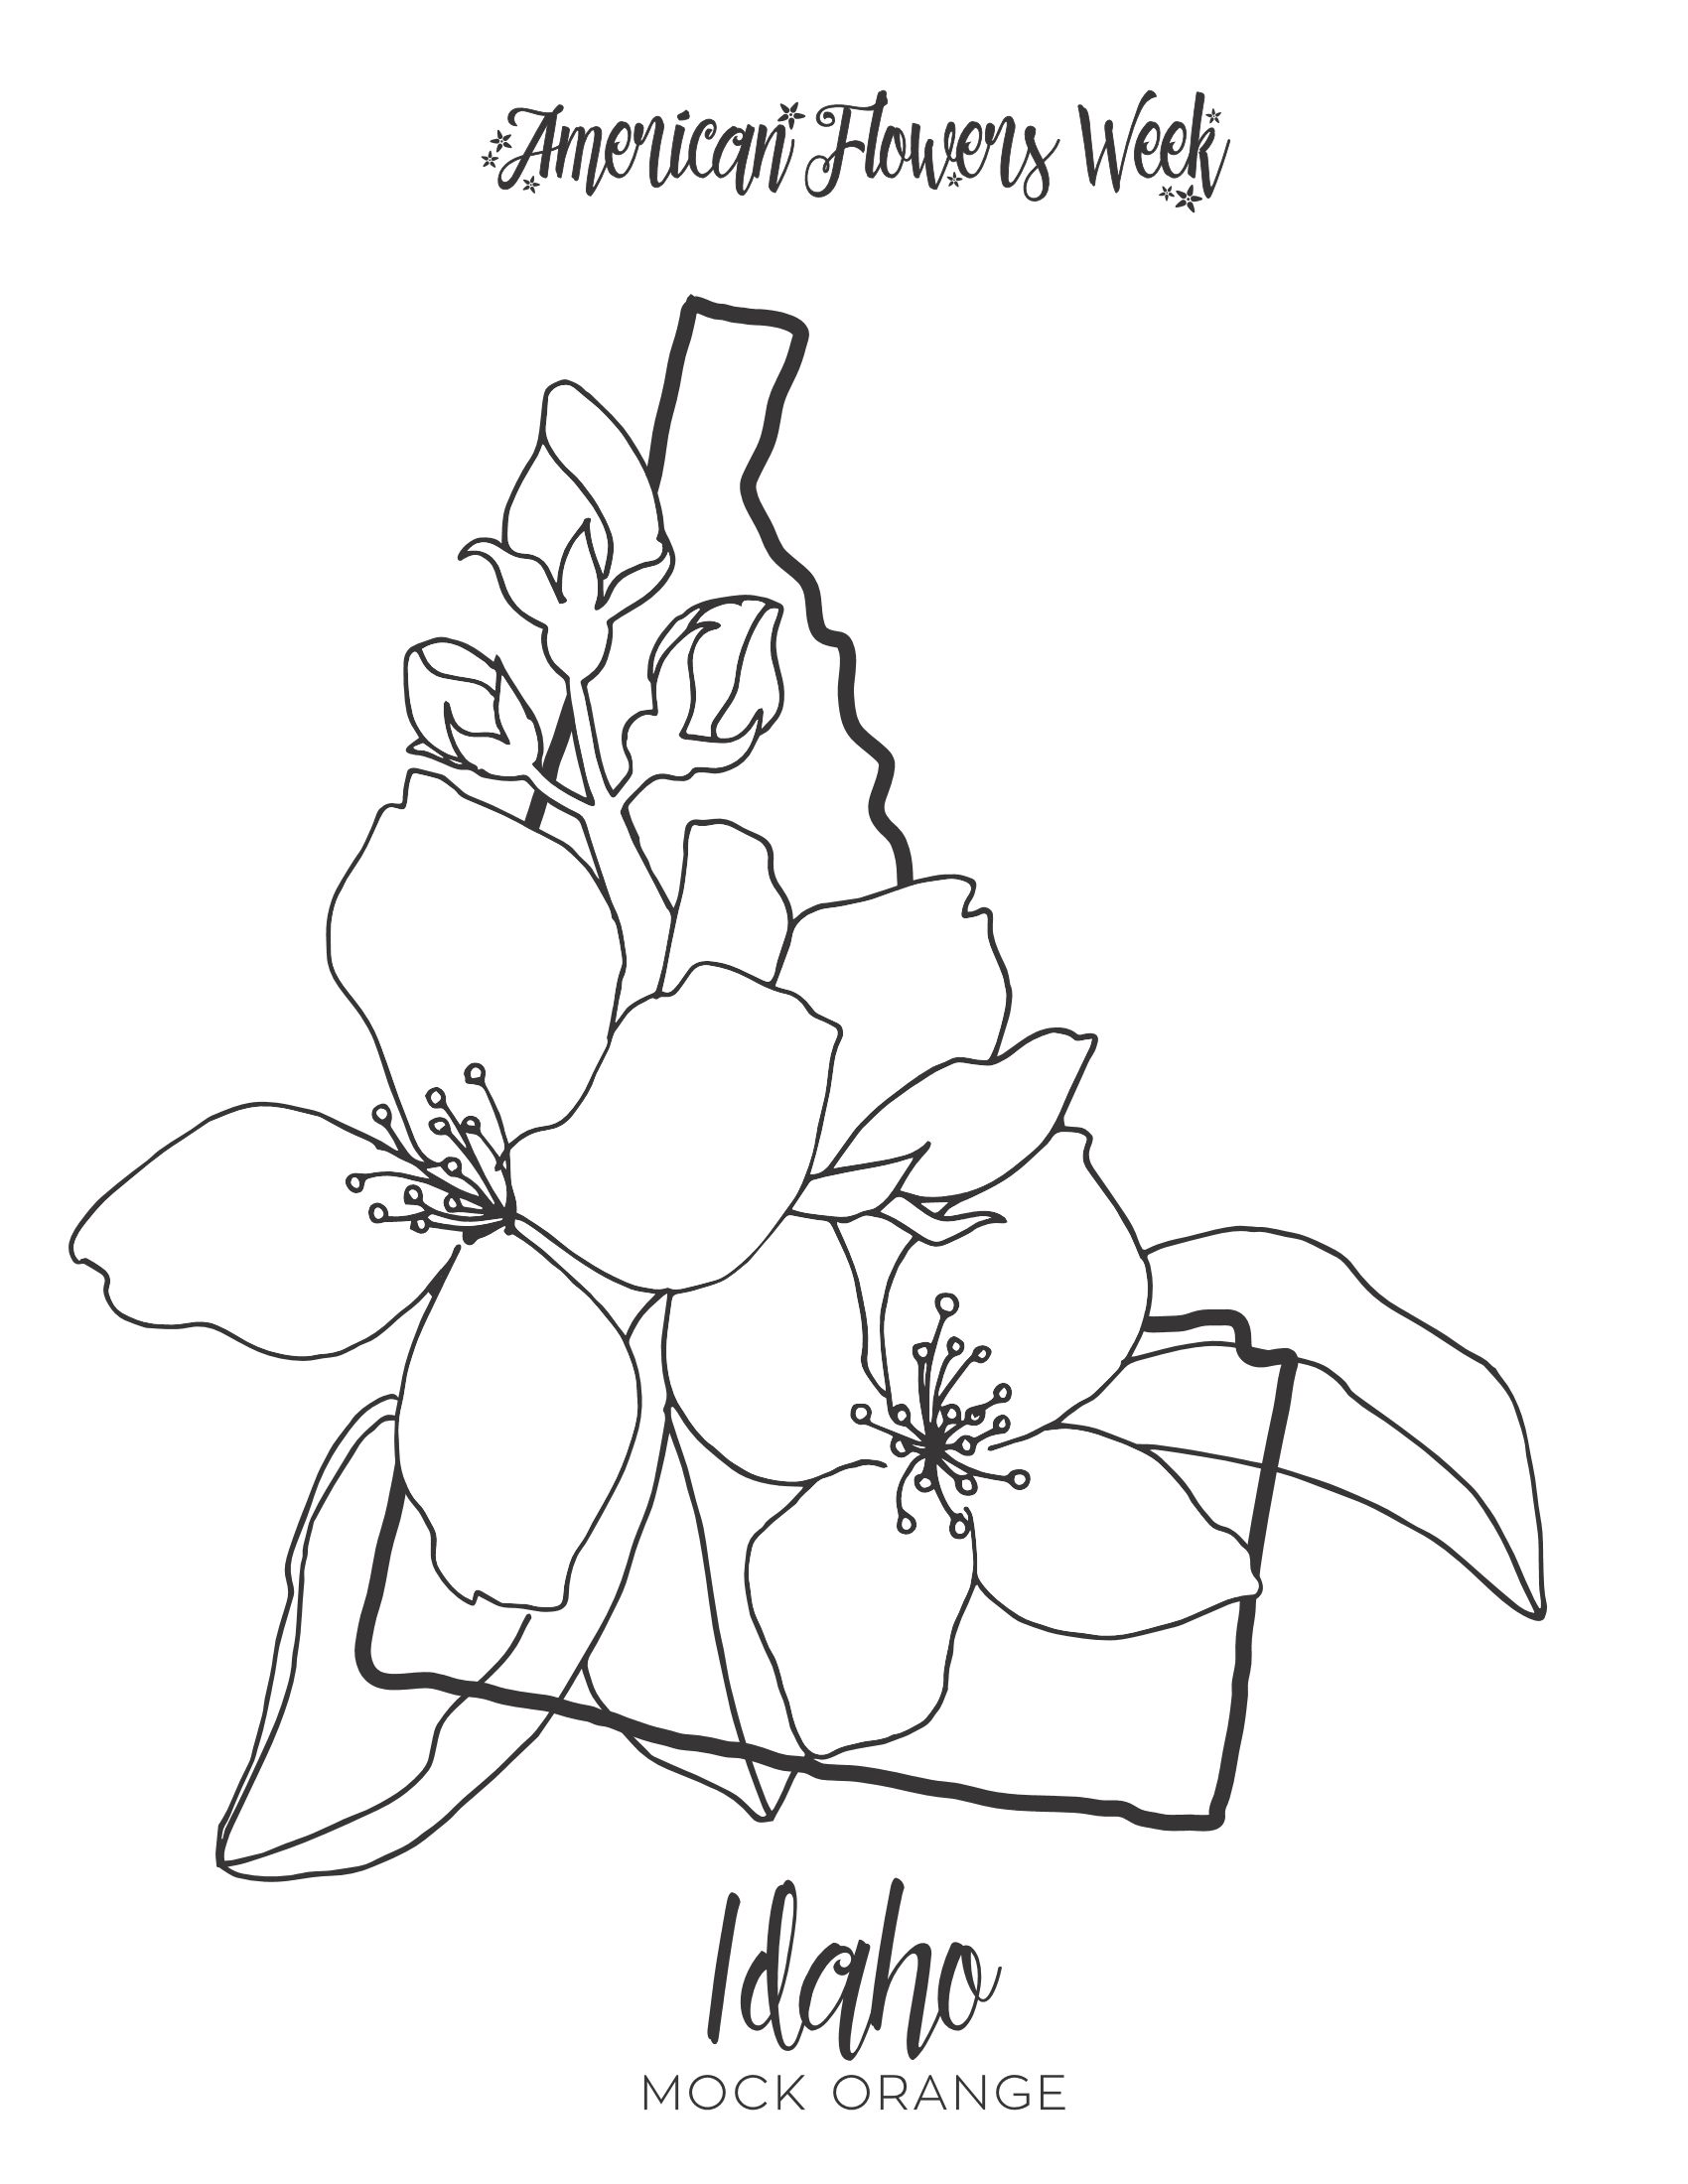 kentucky state flower 50 state flowers free coloring pages american flowers week kentucky state flower